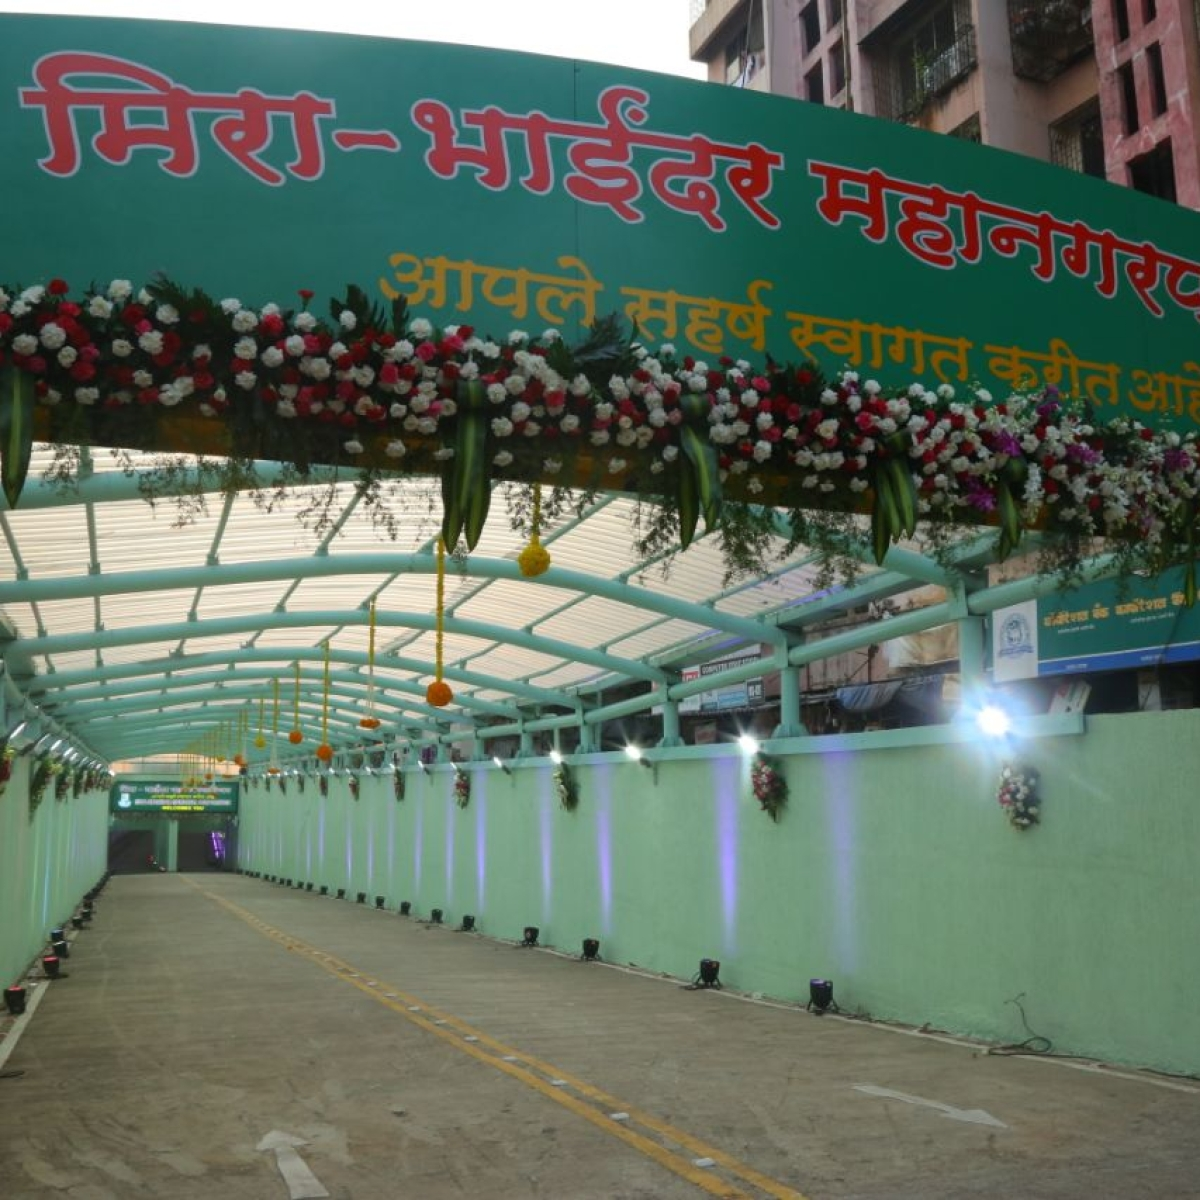 Coronavirus in Mira Bhayandar: Twin city sees highest single-day surge; COVID-19 cases rise to 235